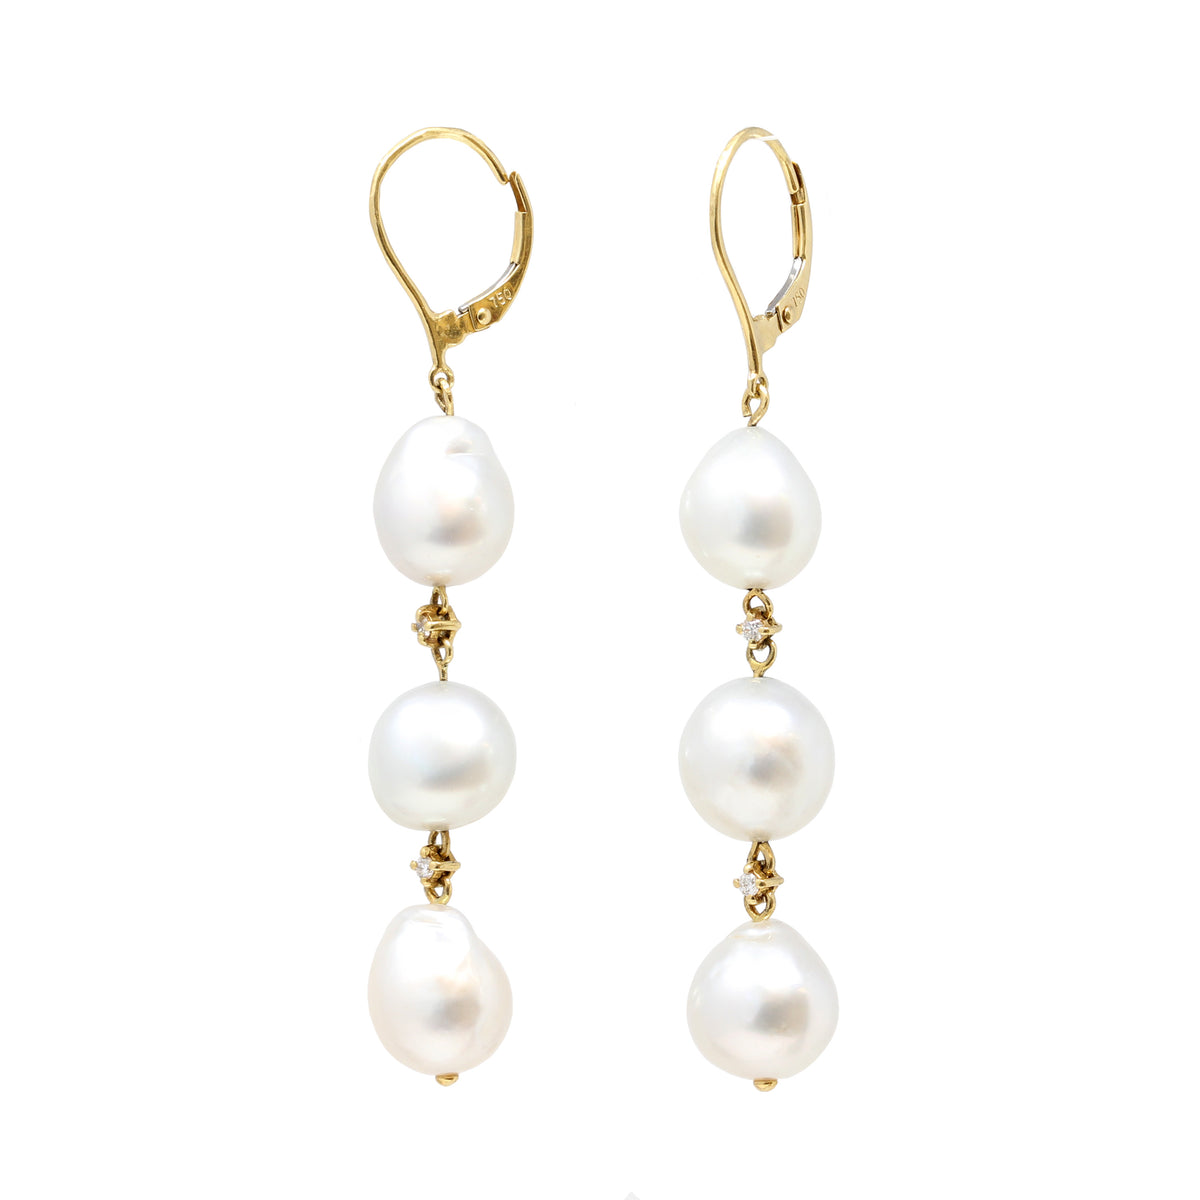 Pair of South Sea Baroque Pearls 18k Gold Dangling Earrings with Diamond Accents